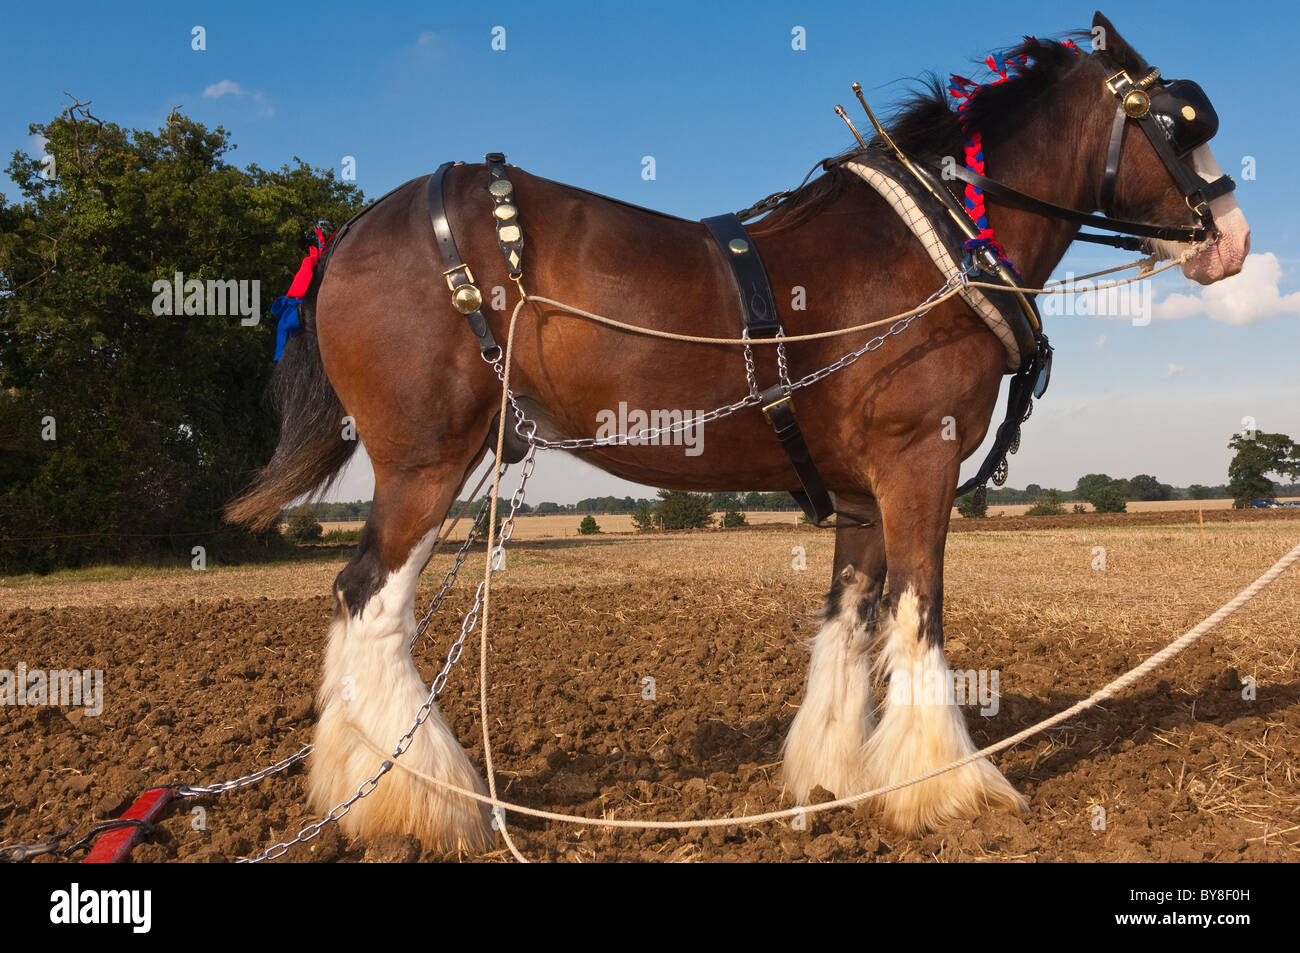 A shire horse ( breed of draught horse ) with plough attatched for ploughing in the Uk - Stock Image